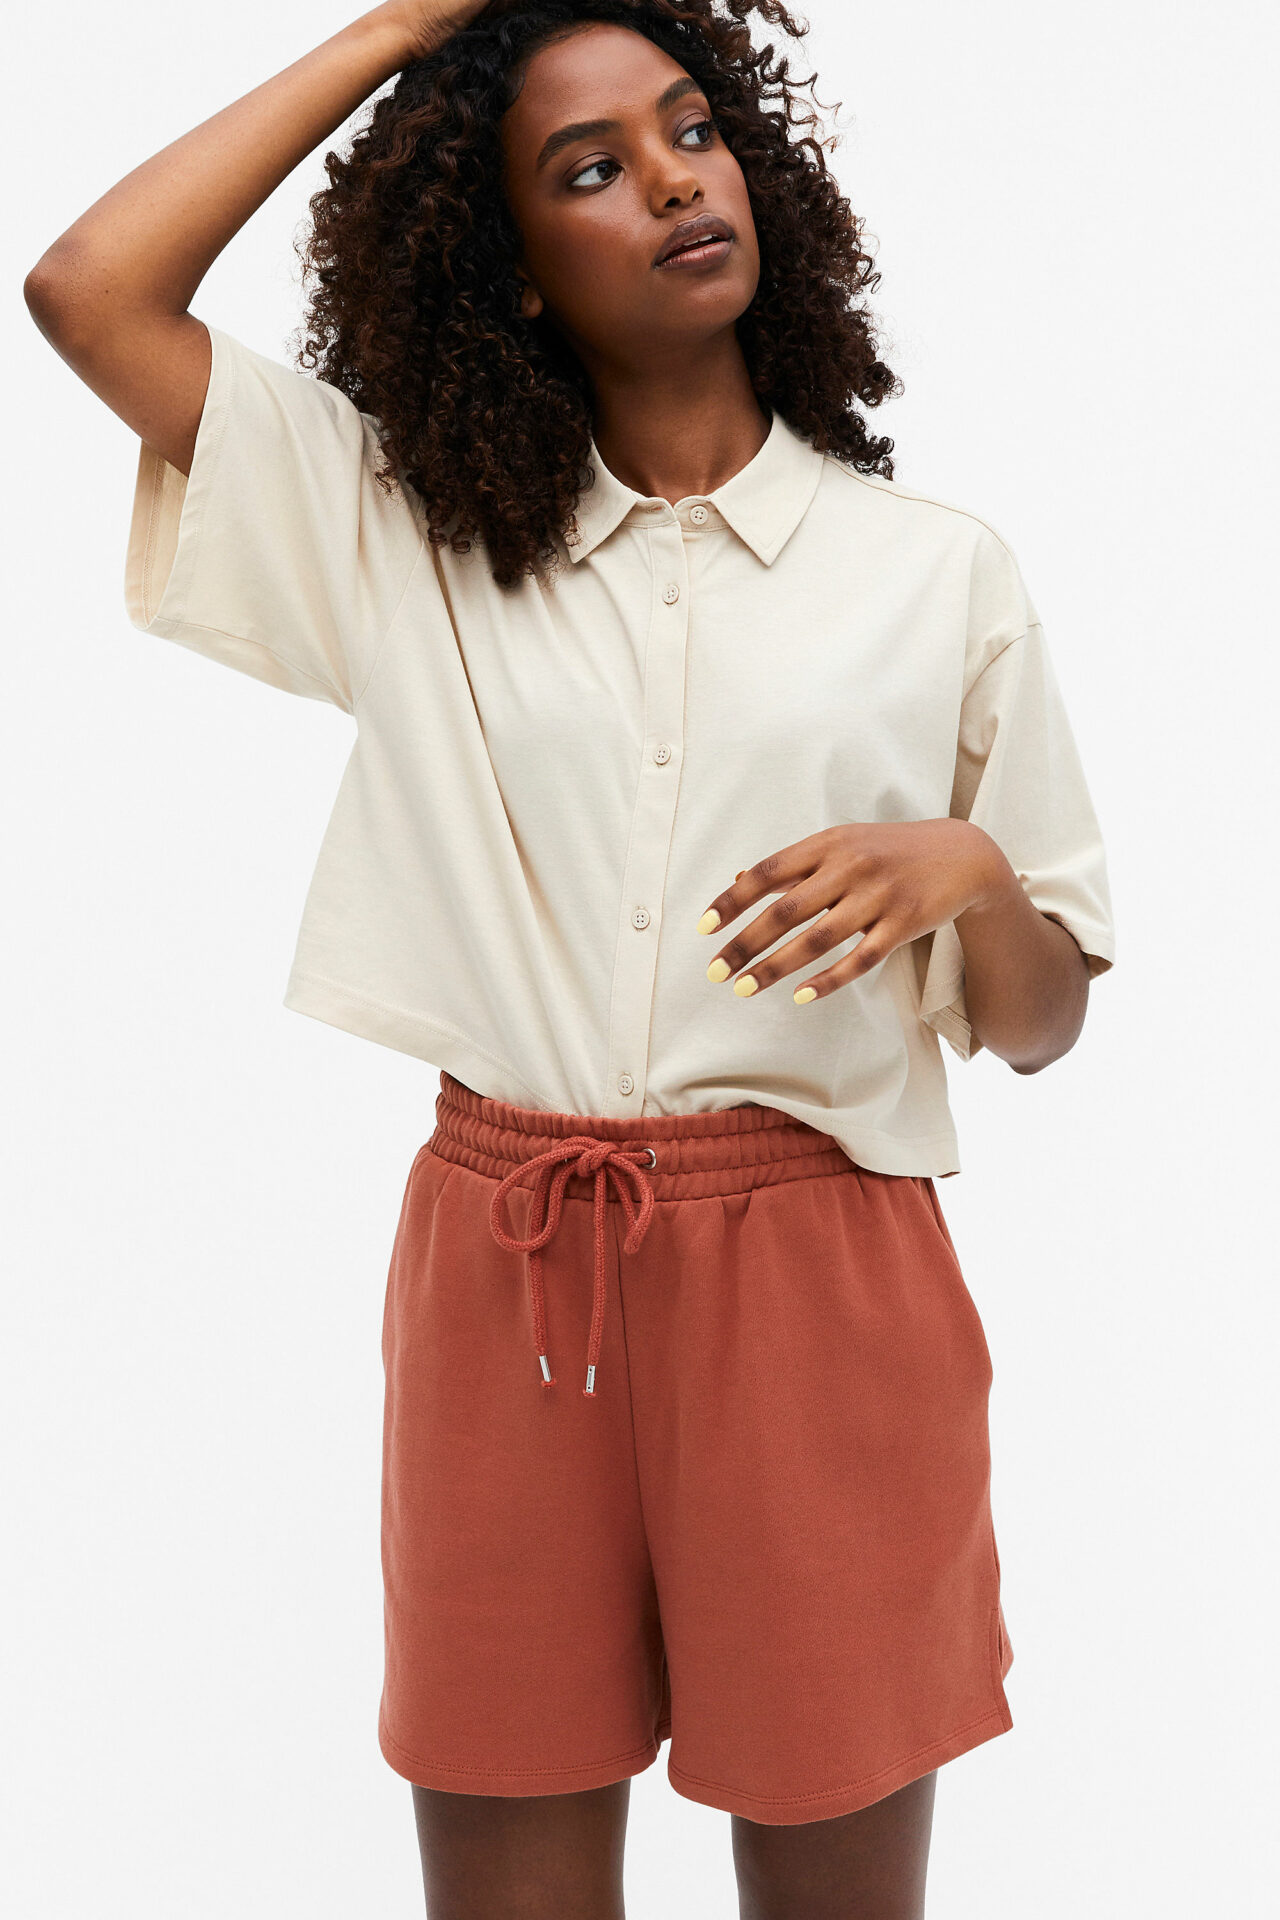 Monki's Cotton sweat shorts in the colour, light rust.